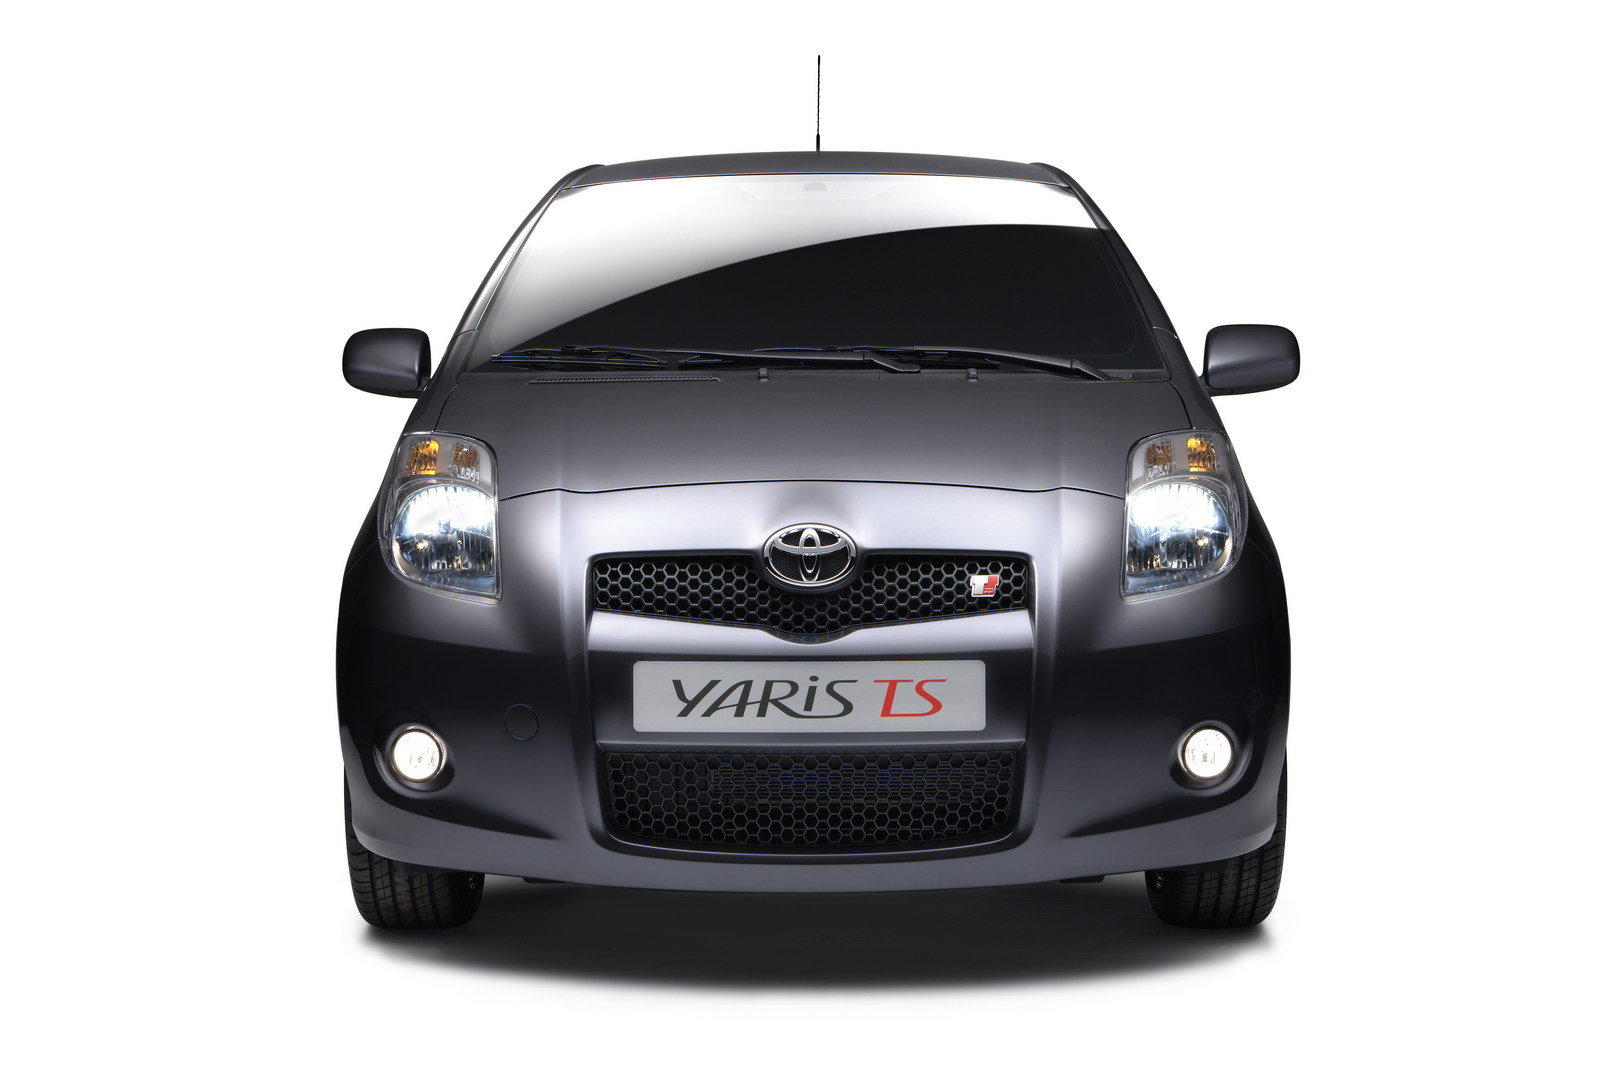 2007 Toyota Yaris T Sport Review - Top Speed